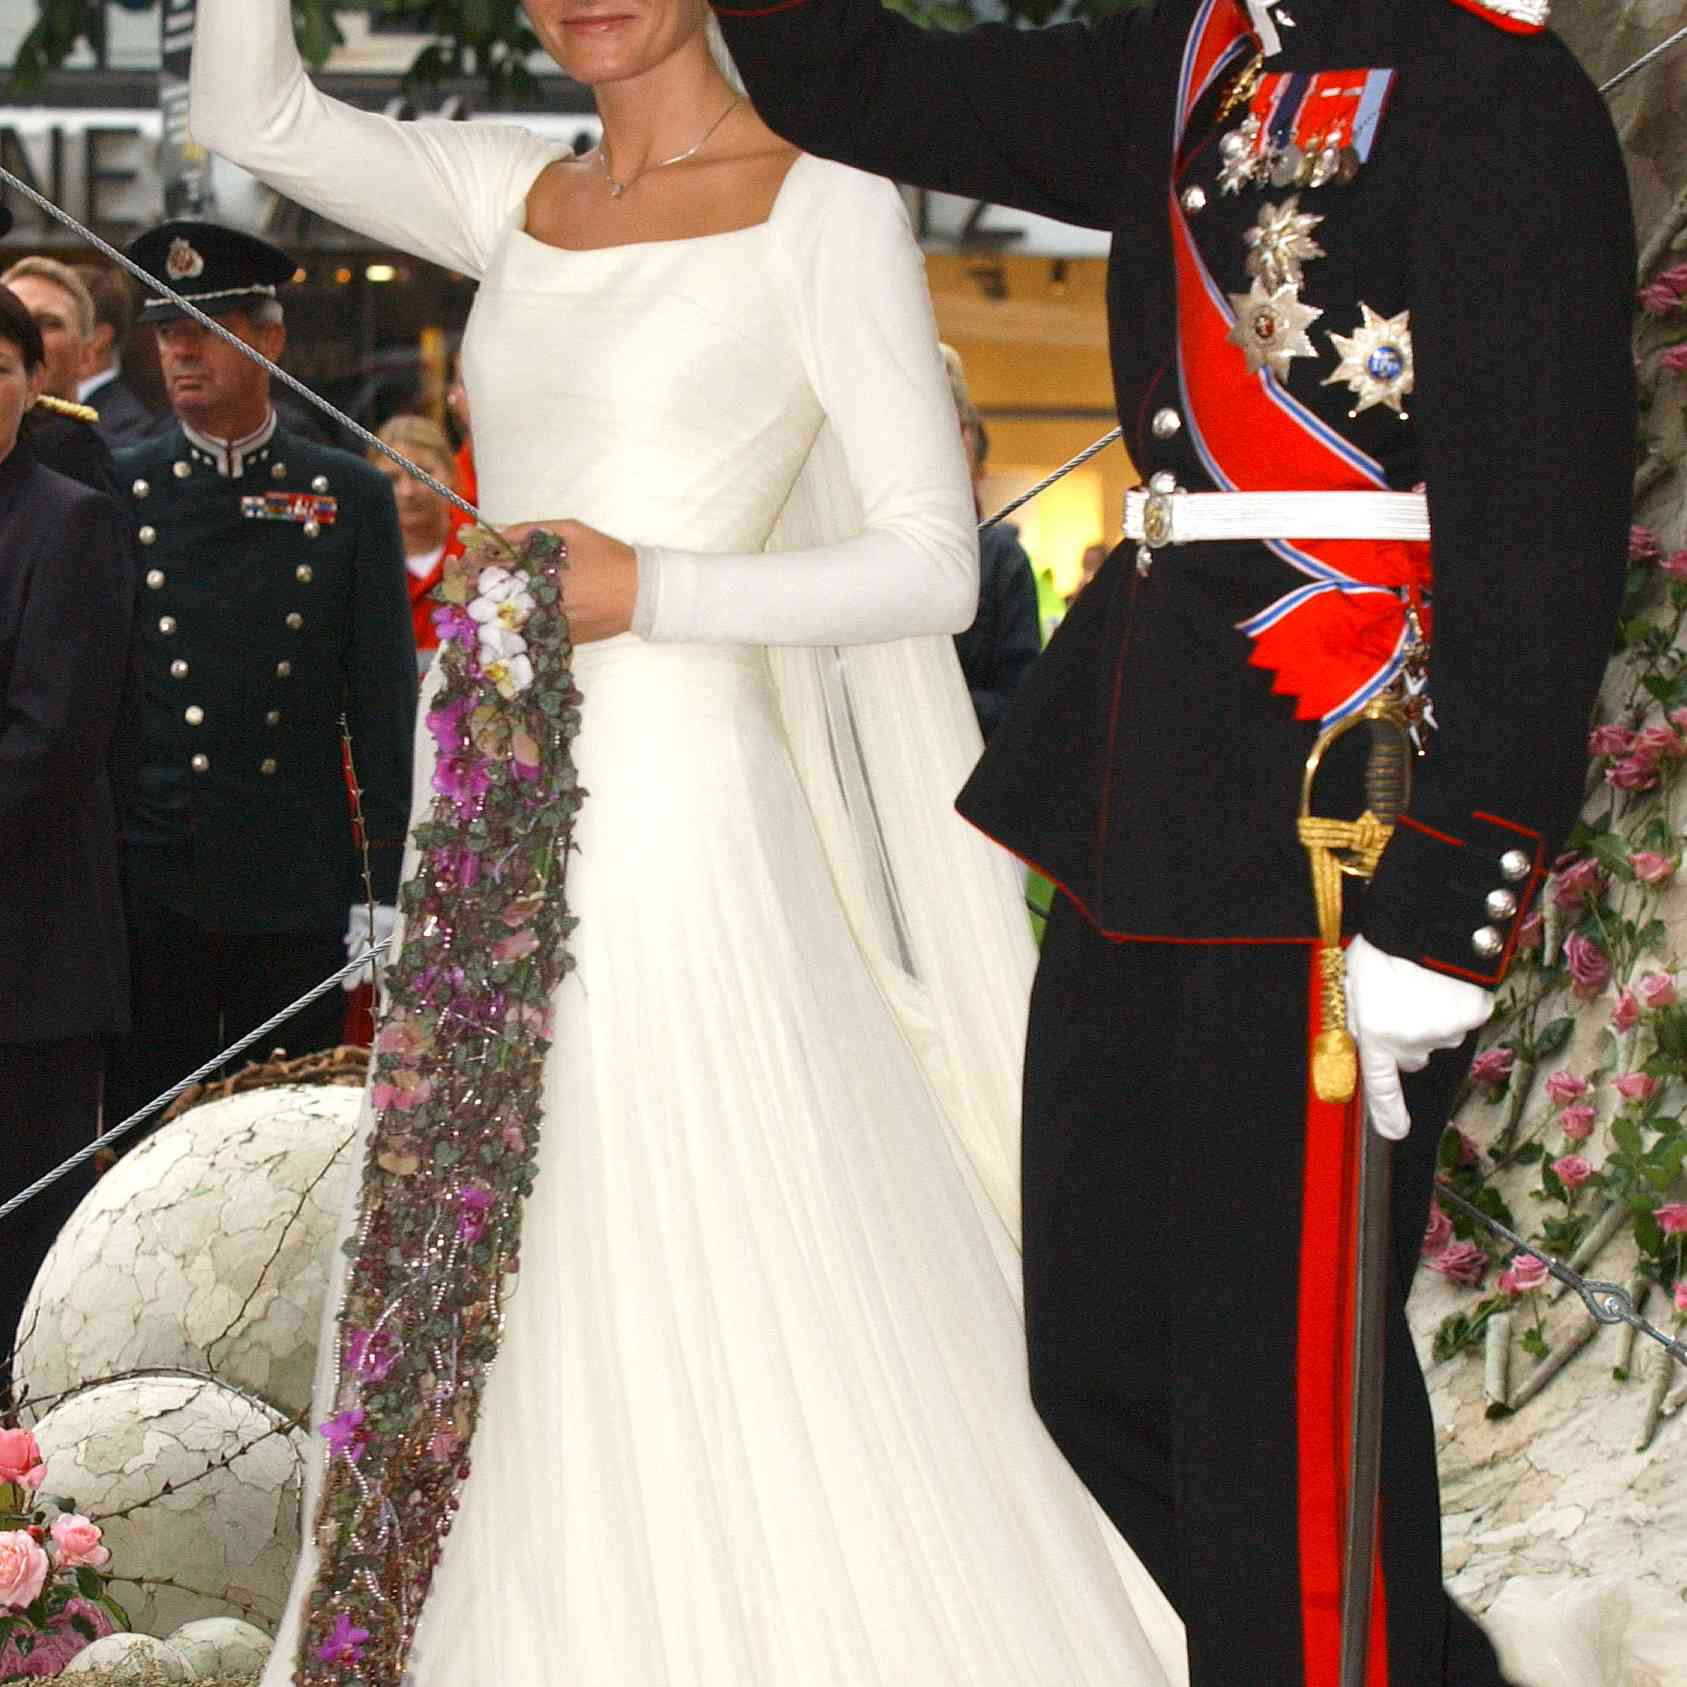 Prince Haakon and Mette-Marit at their wedding